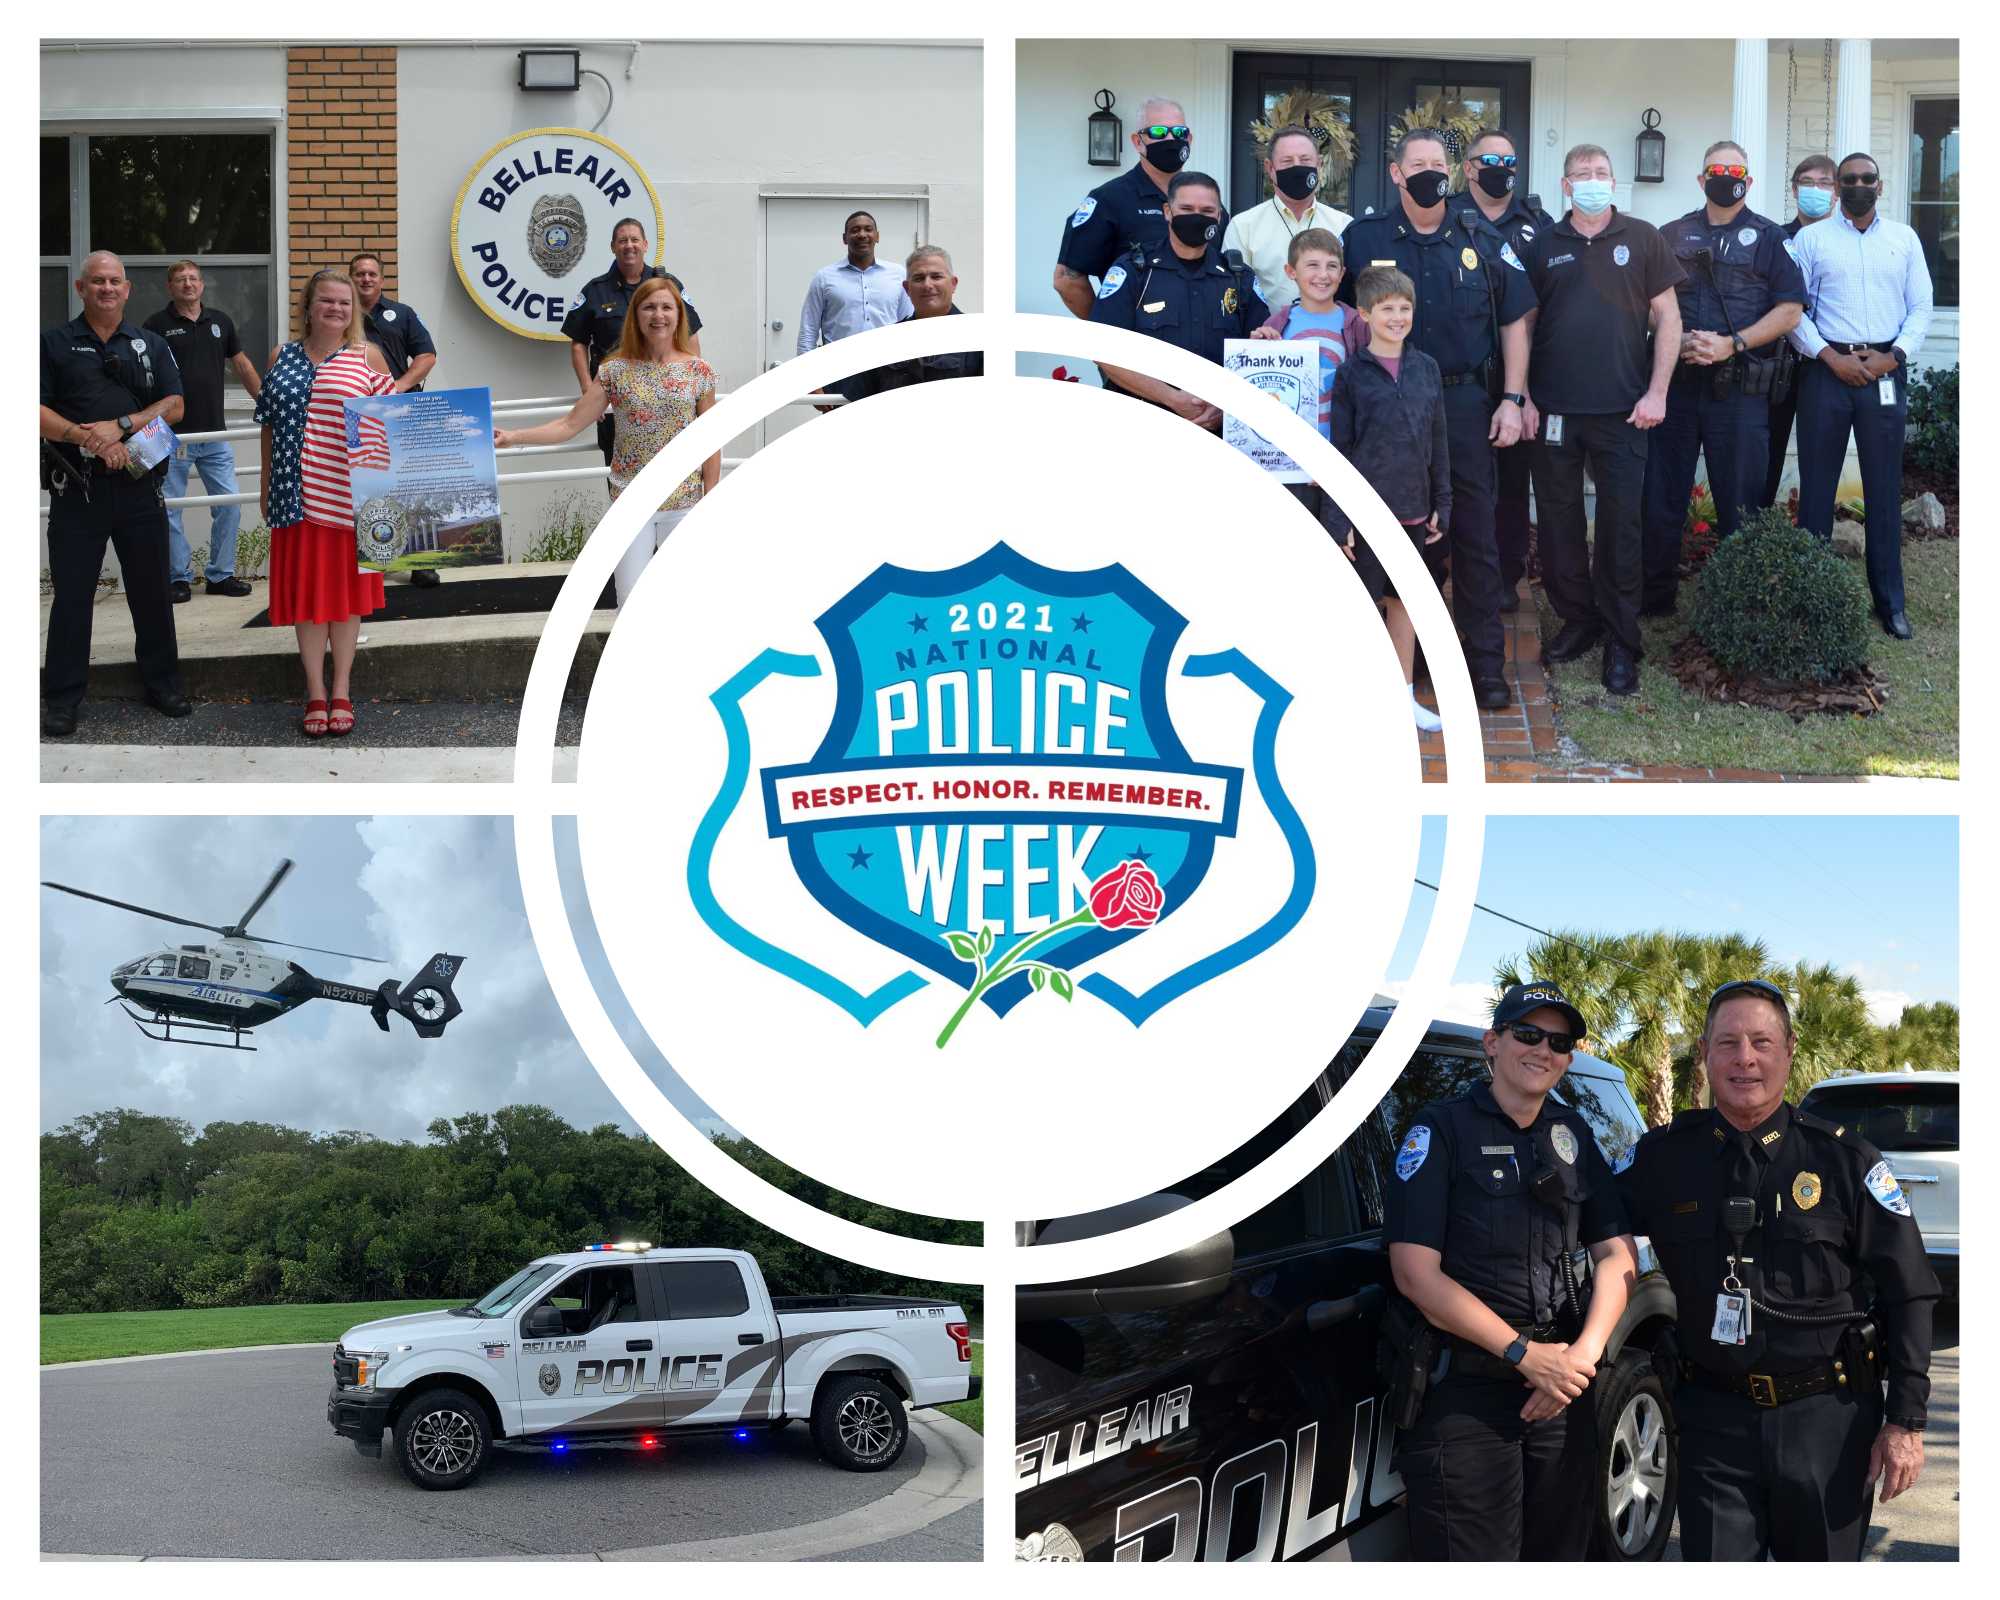 A collage of police officer photos with a logo: 2021 National Police Week. Respect. Honor. Remember.